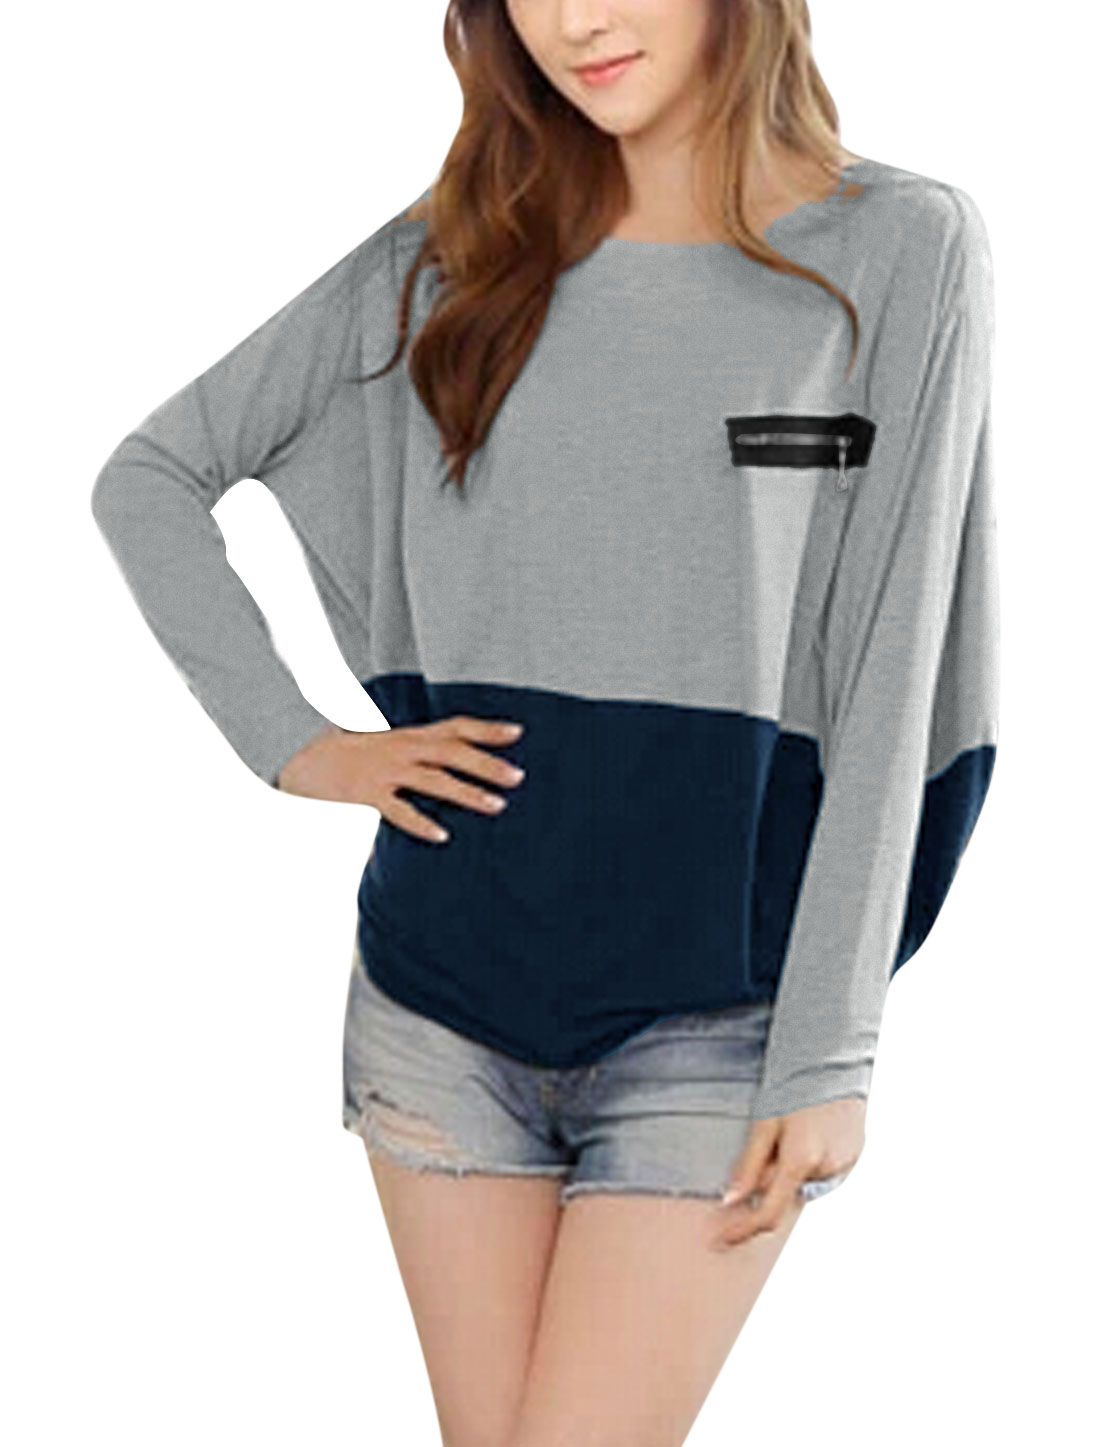 Lady Long Batwing Sleeve Color Block Tee Shirt Light Gary Navy Blue L